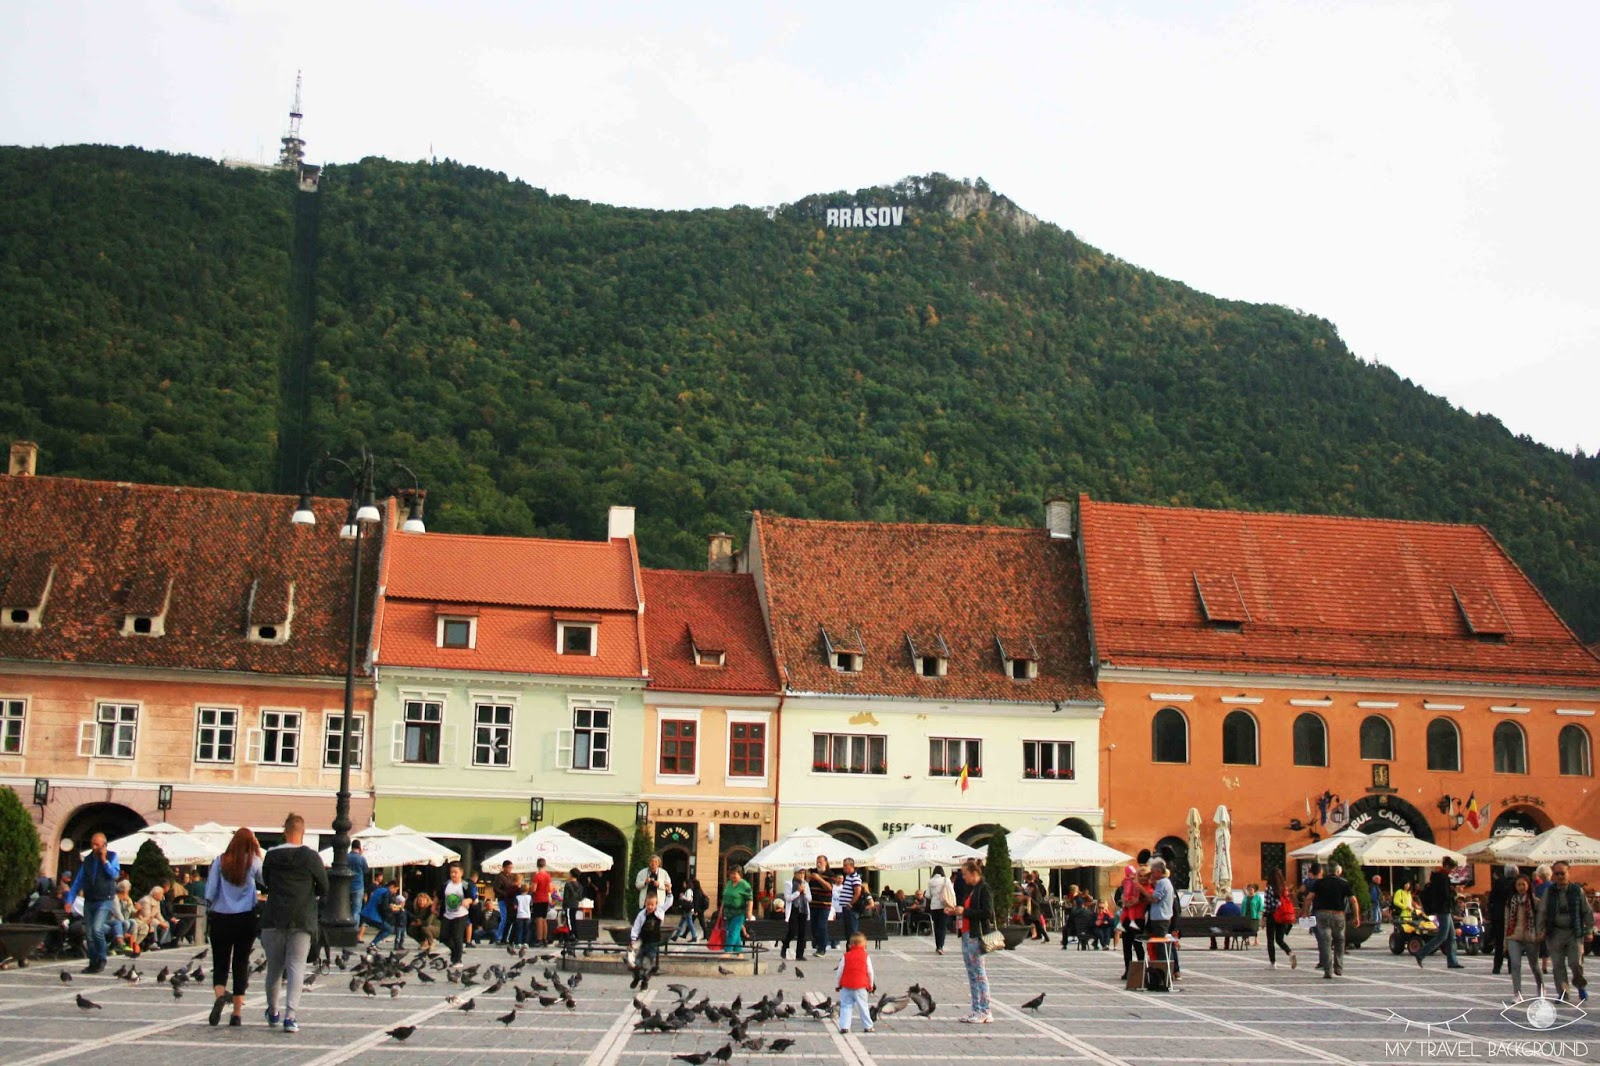 My Travel Background : cartes postales de Roumanie - Brasov